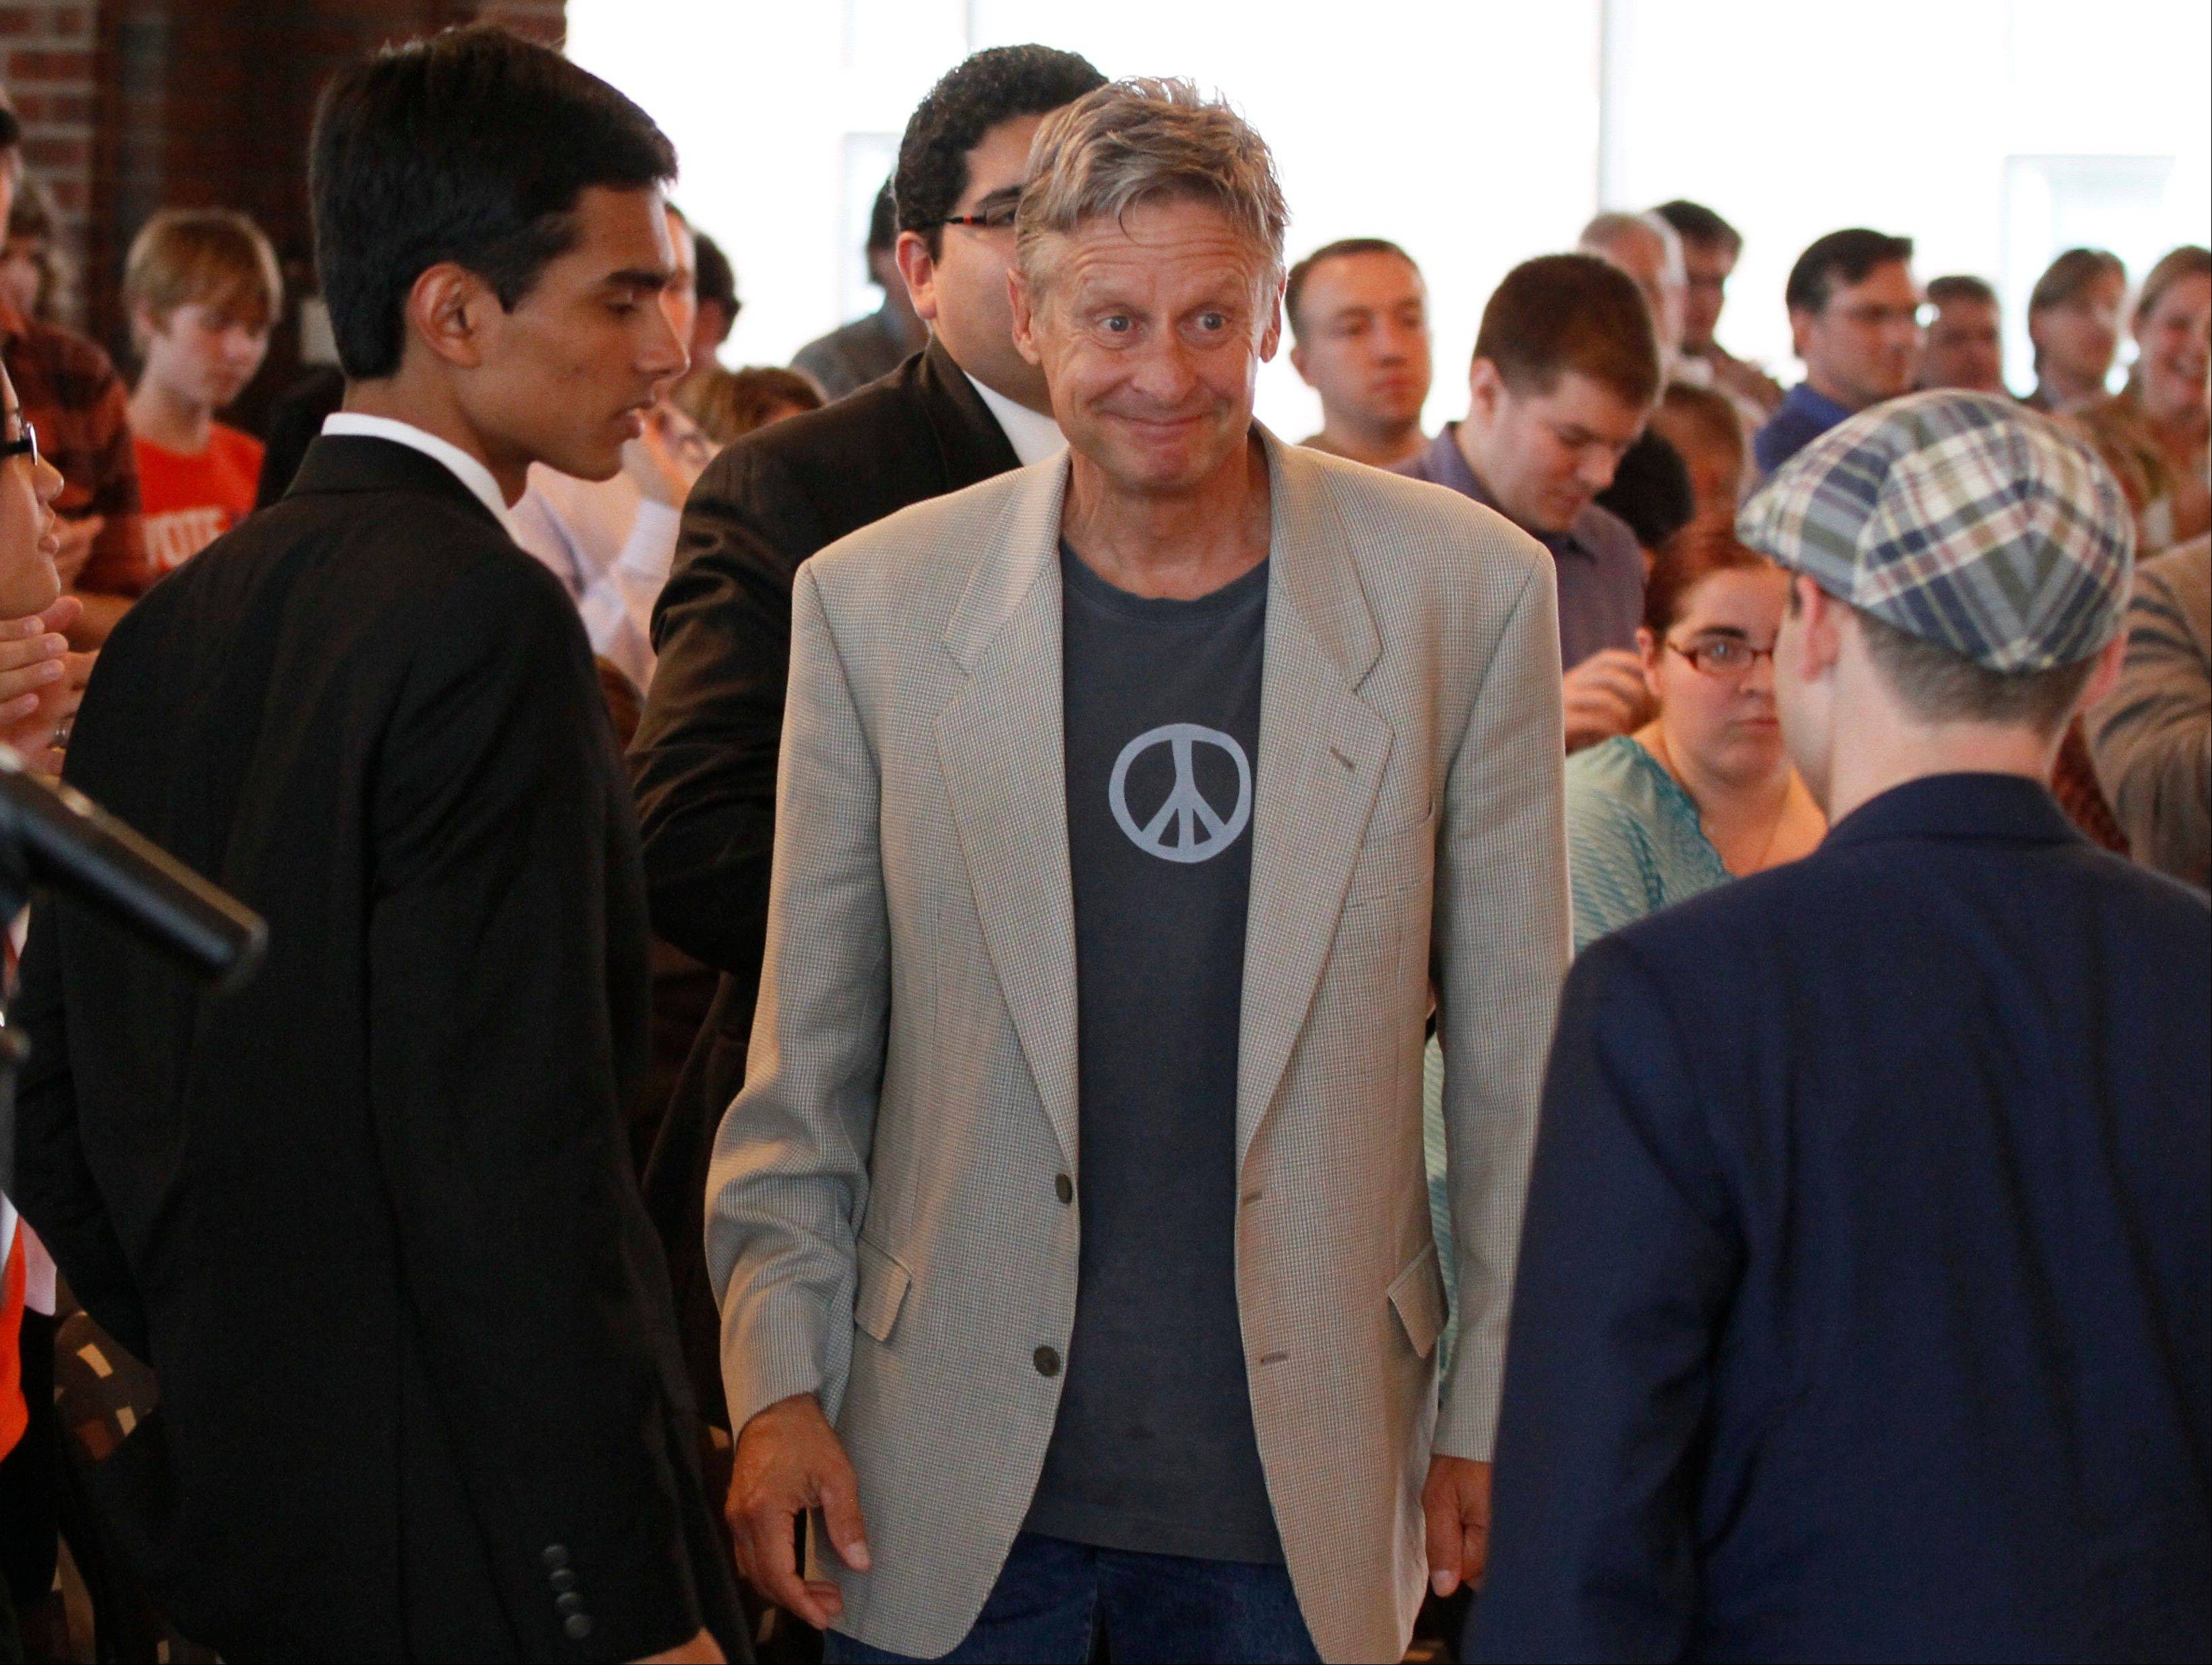 Libertarian Party presidential nominee Gary Johnson, right, greets students at Macalester College in St. Paul, Minn.